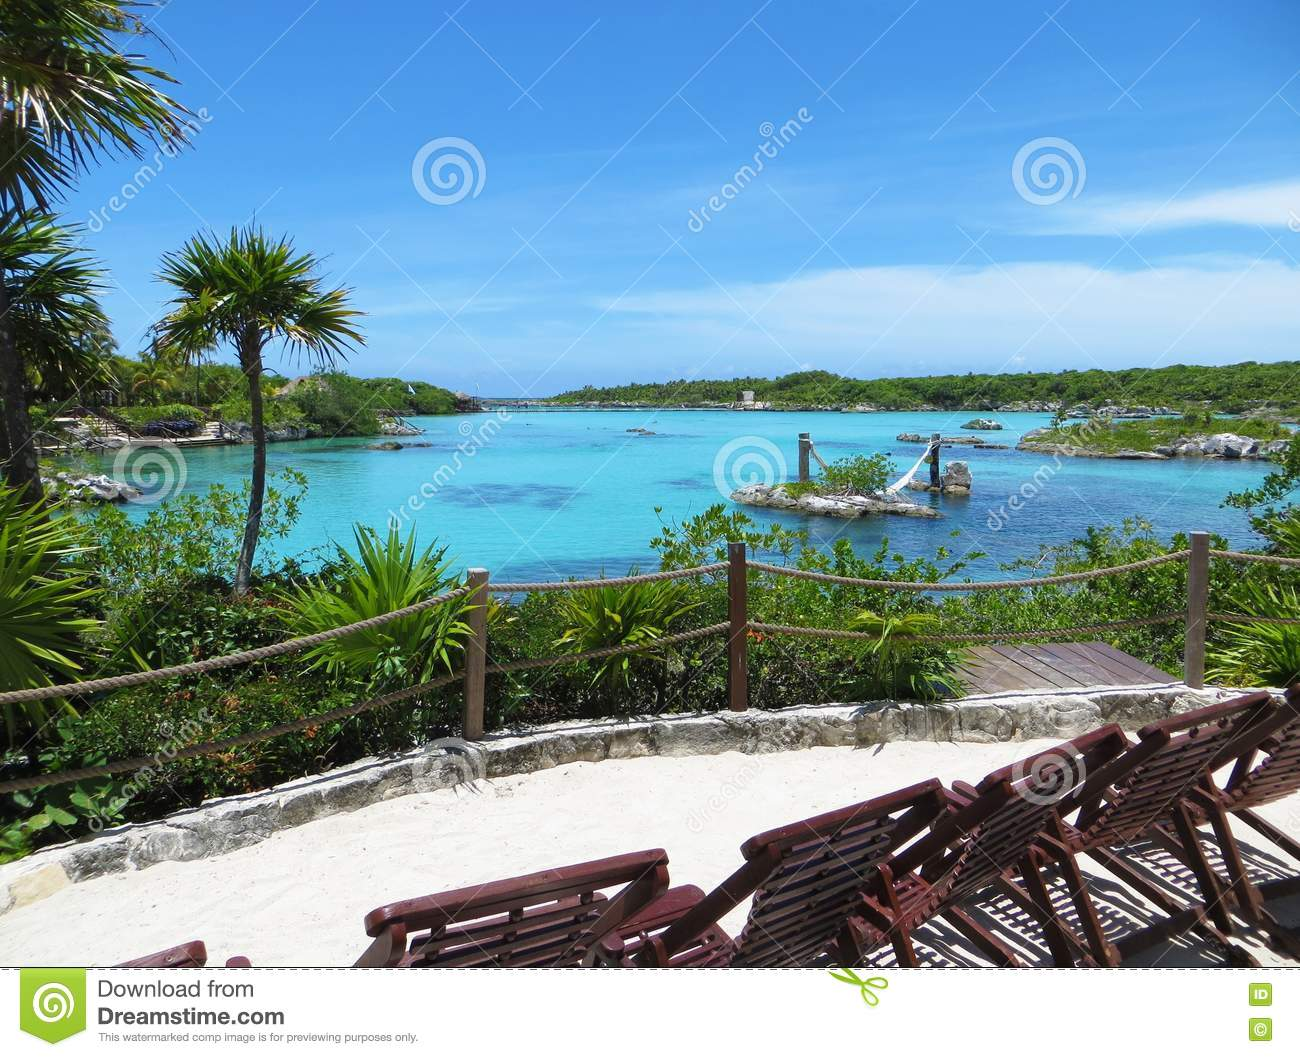 Tropical Island Beach and Turquoise Blue Sea